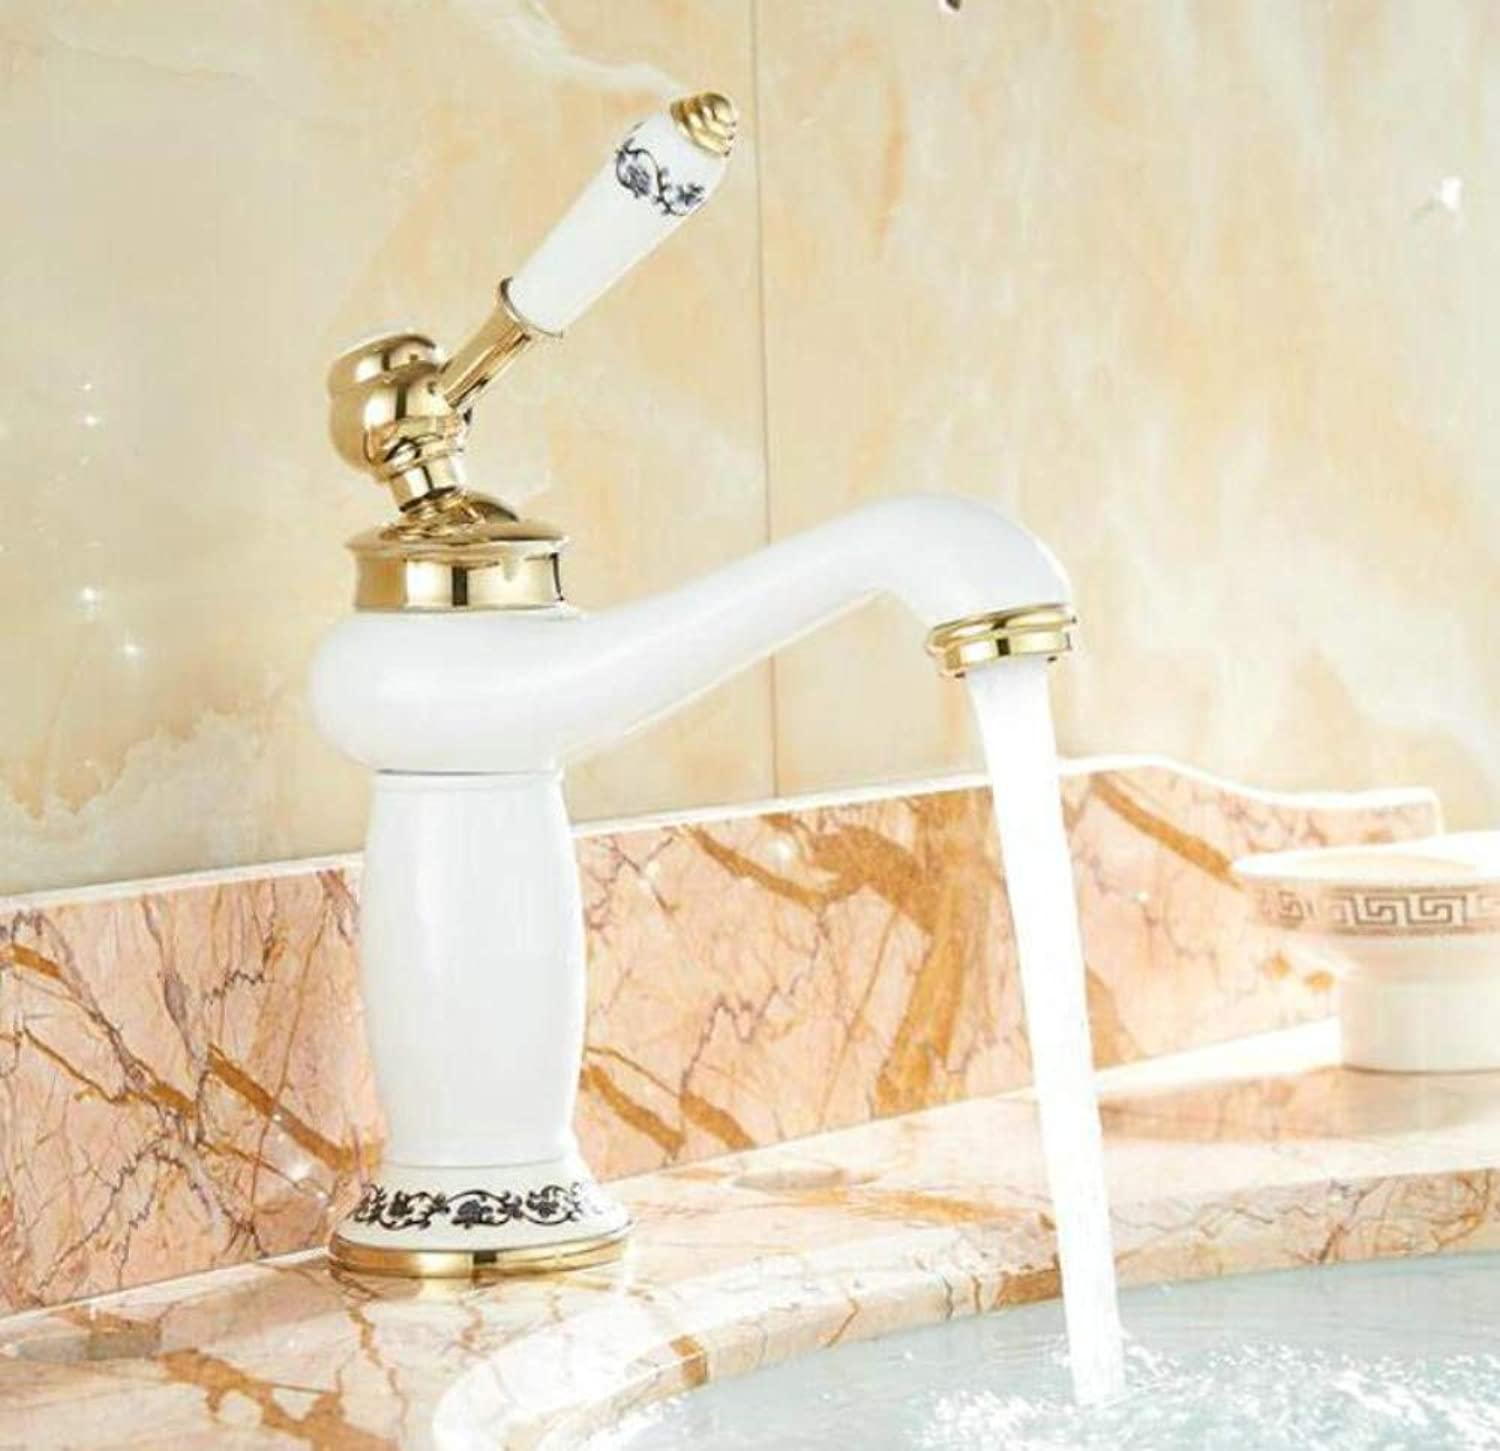 Bathroom Faucet Basin Faucet White Painted Finish Brass Mixer Tap Faucet Hot and Cold Water Taps